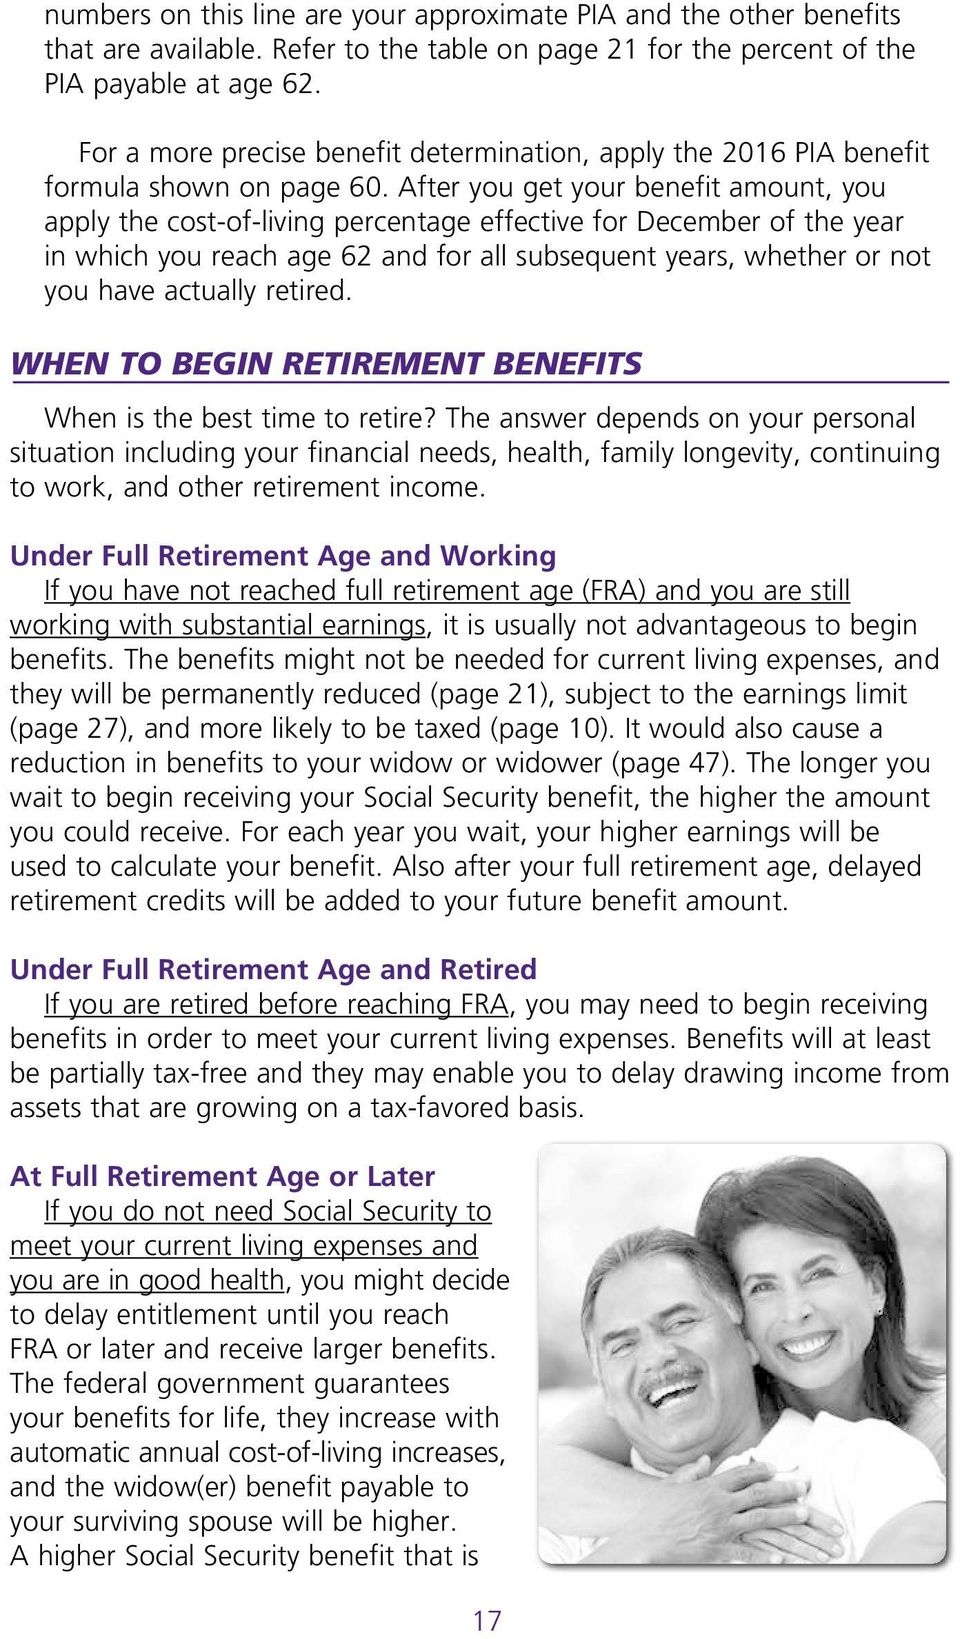 After you get your benefit amount, you apply the cost-of-living percentage effective for December of the year in which you reach age 62 and for all subsequent years, whether or not you have actually